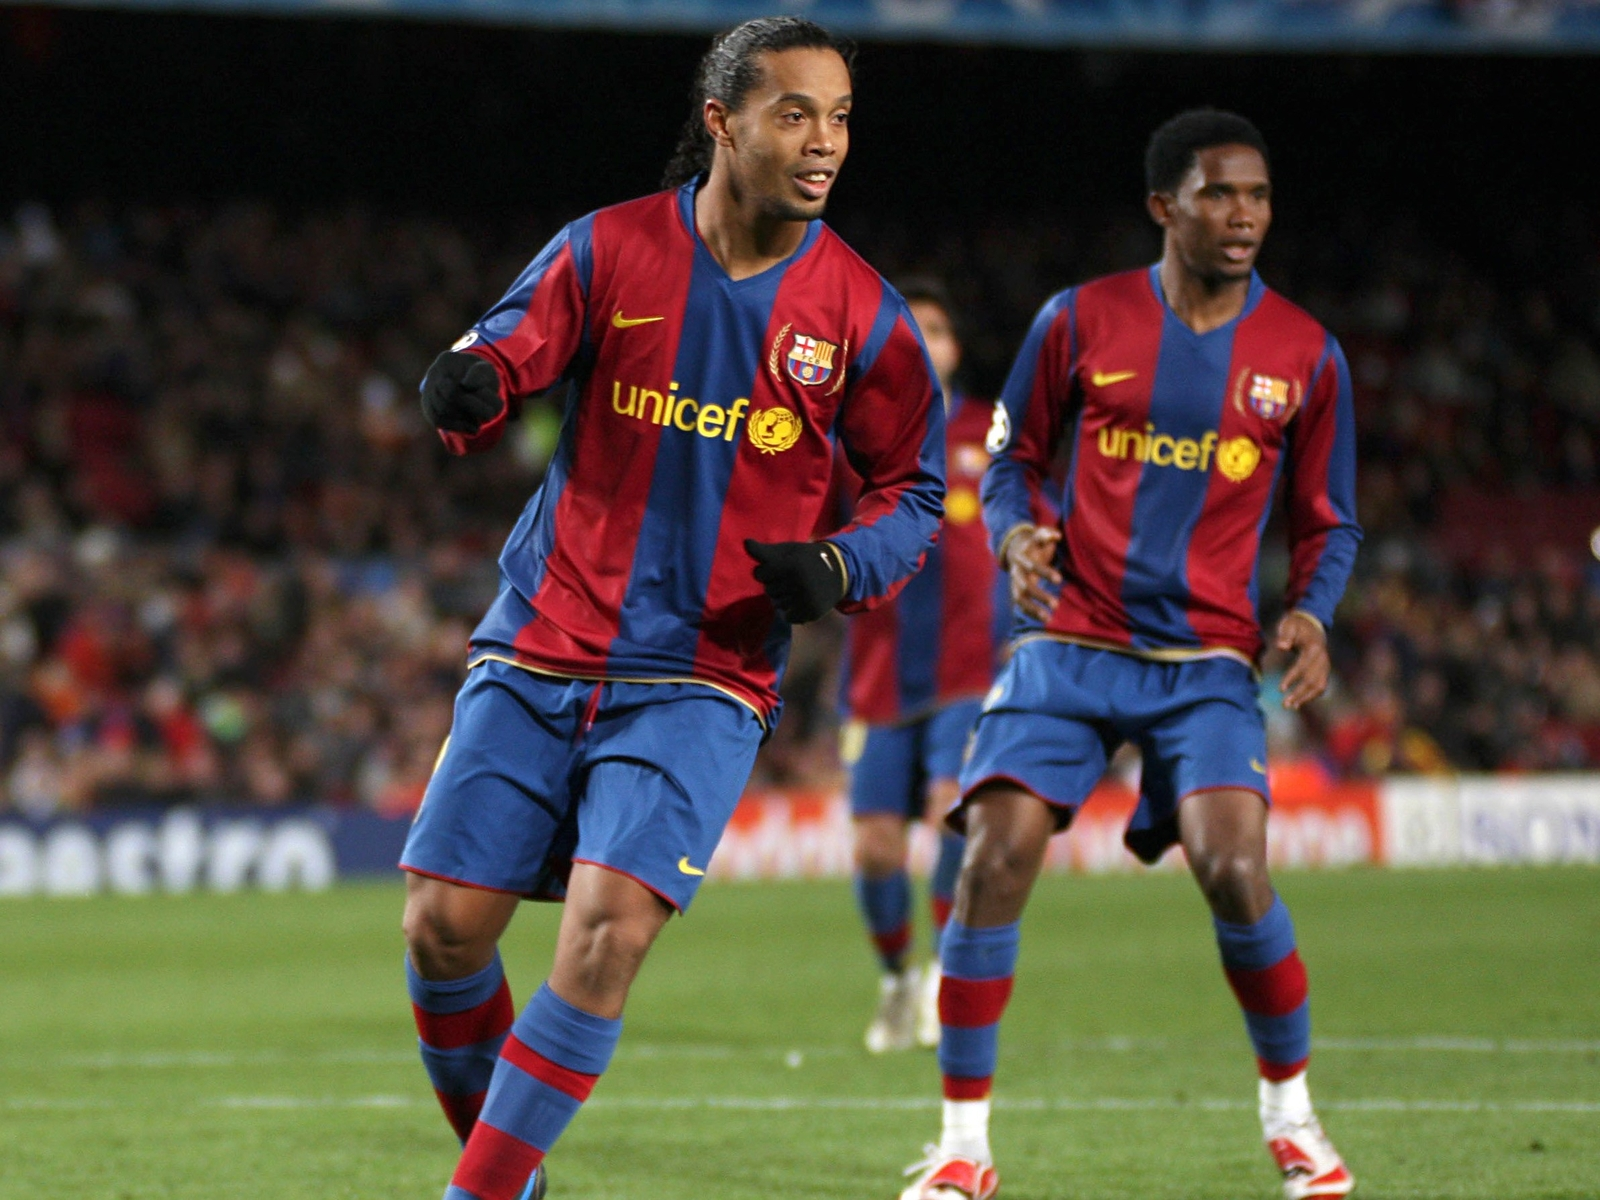 Samuel Eto'o and Ronaldinho